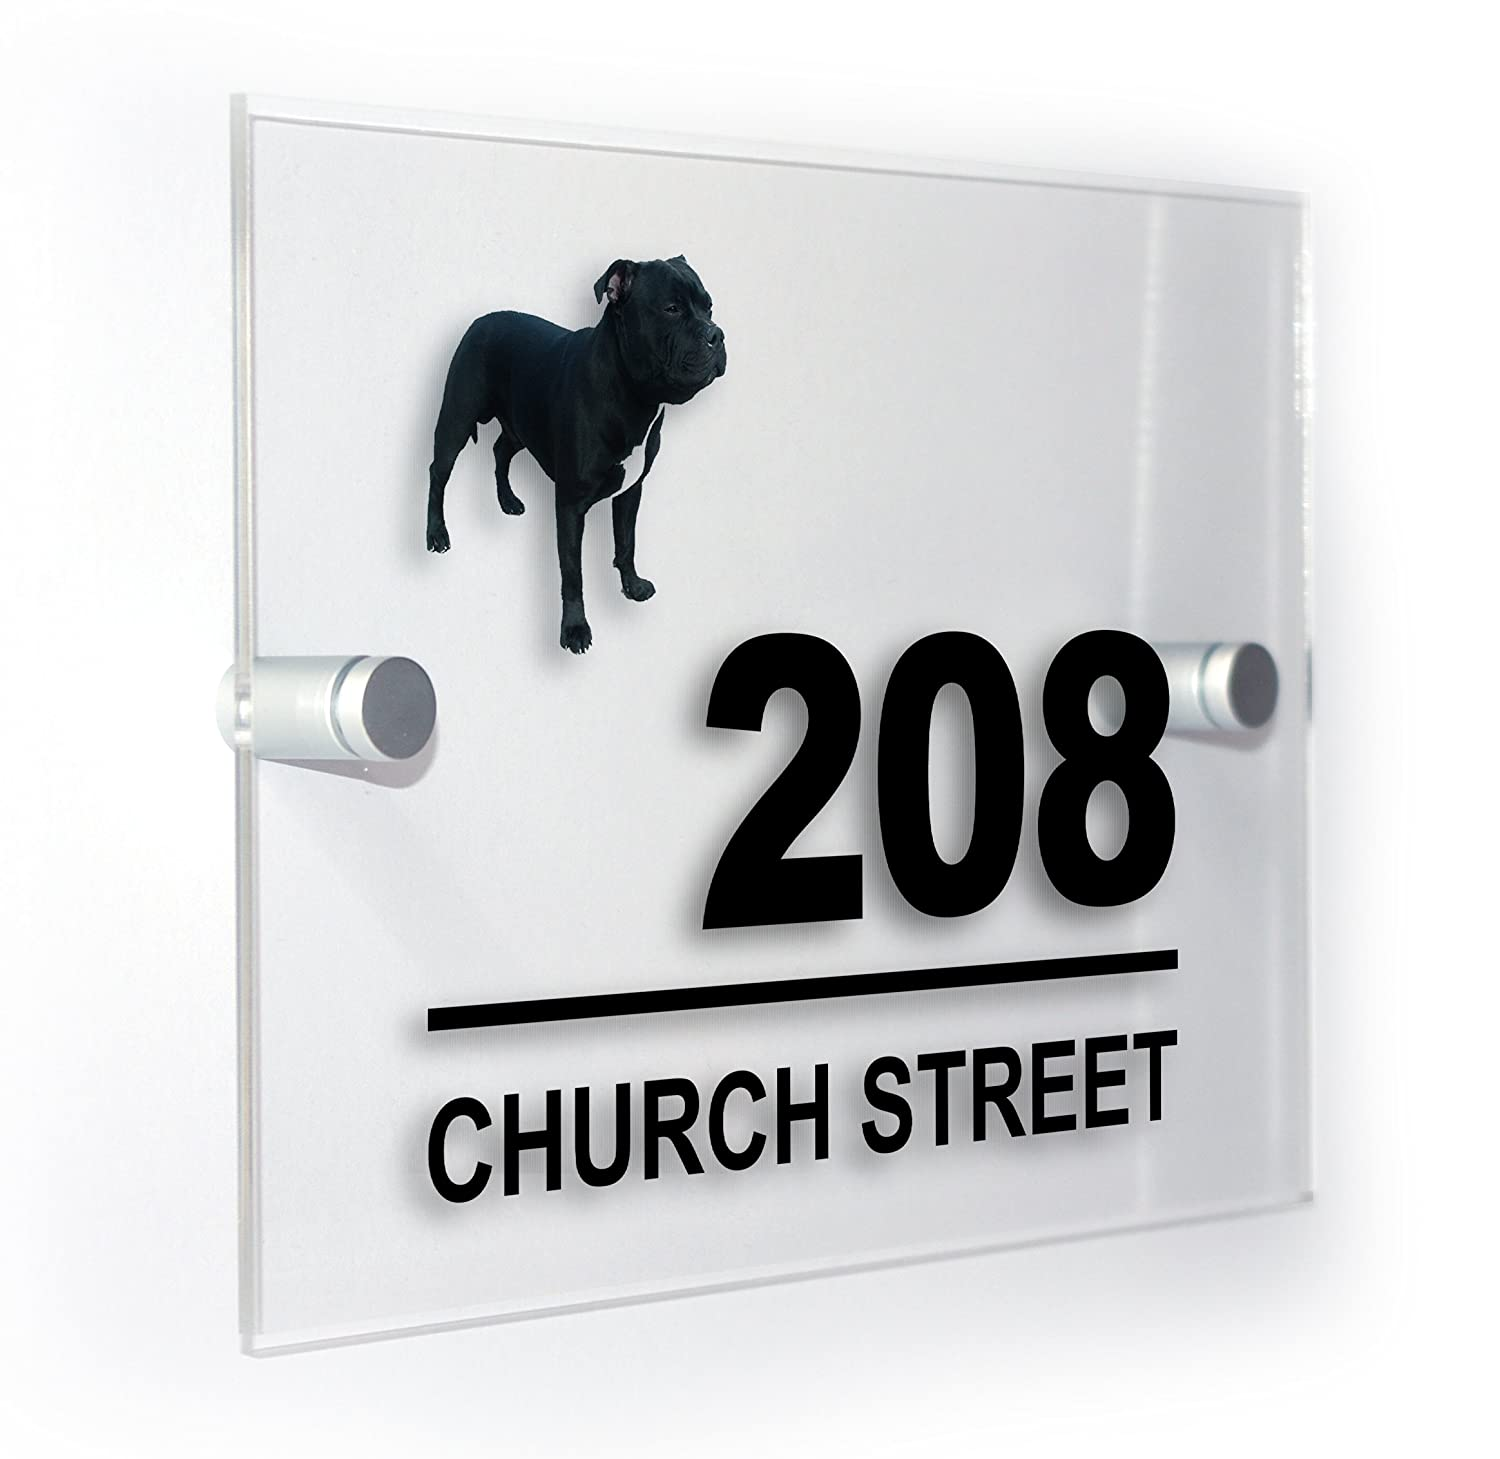 Staffy Staffie Bull Terrier Dog Modern Style Personalised House Flat Number Plaque Full Colour Sign Outdoor Use Weatherproof Market Leading Print Premium Home Plaques